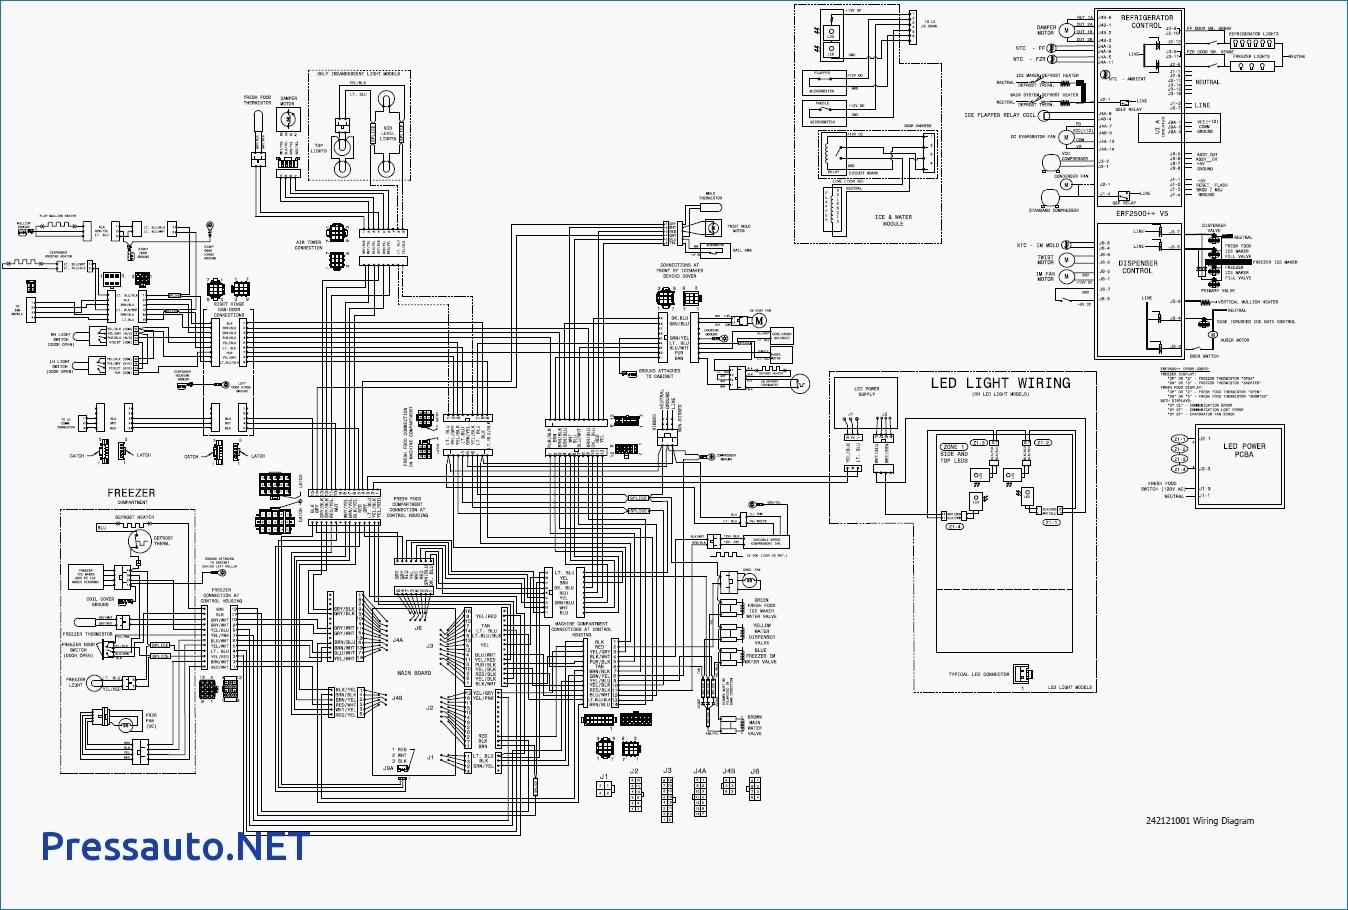 wiring diagram for whirlpool refrigerator � frigidaire ice maker wiring  diagram